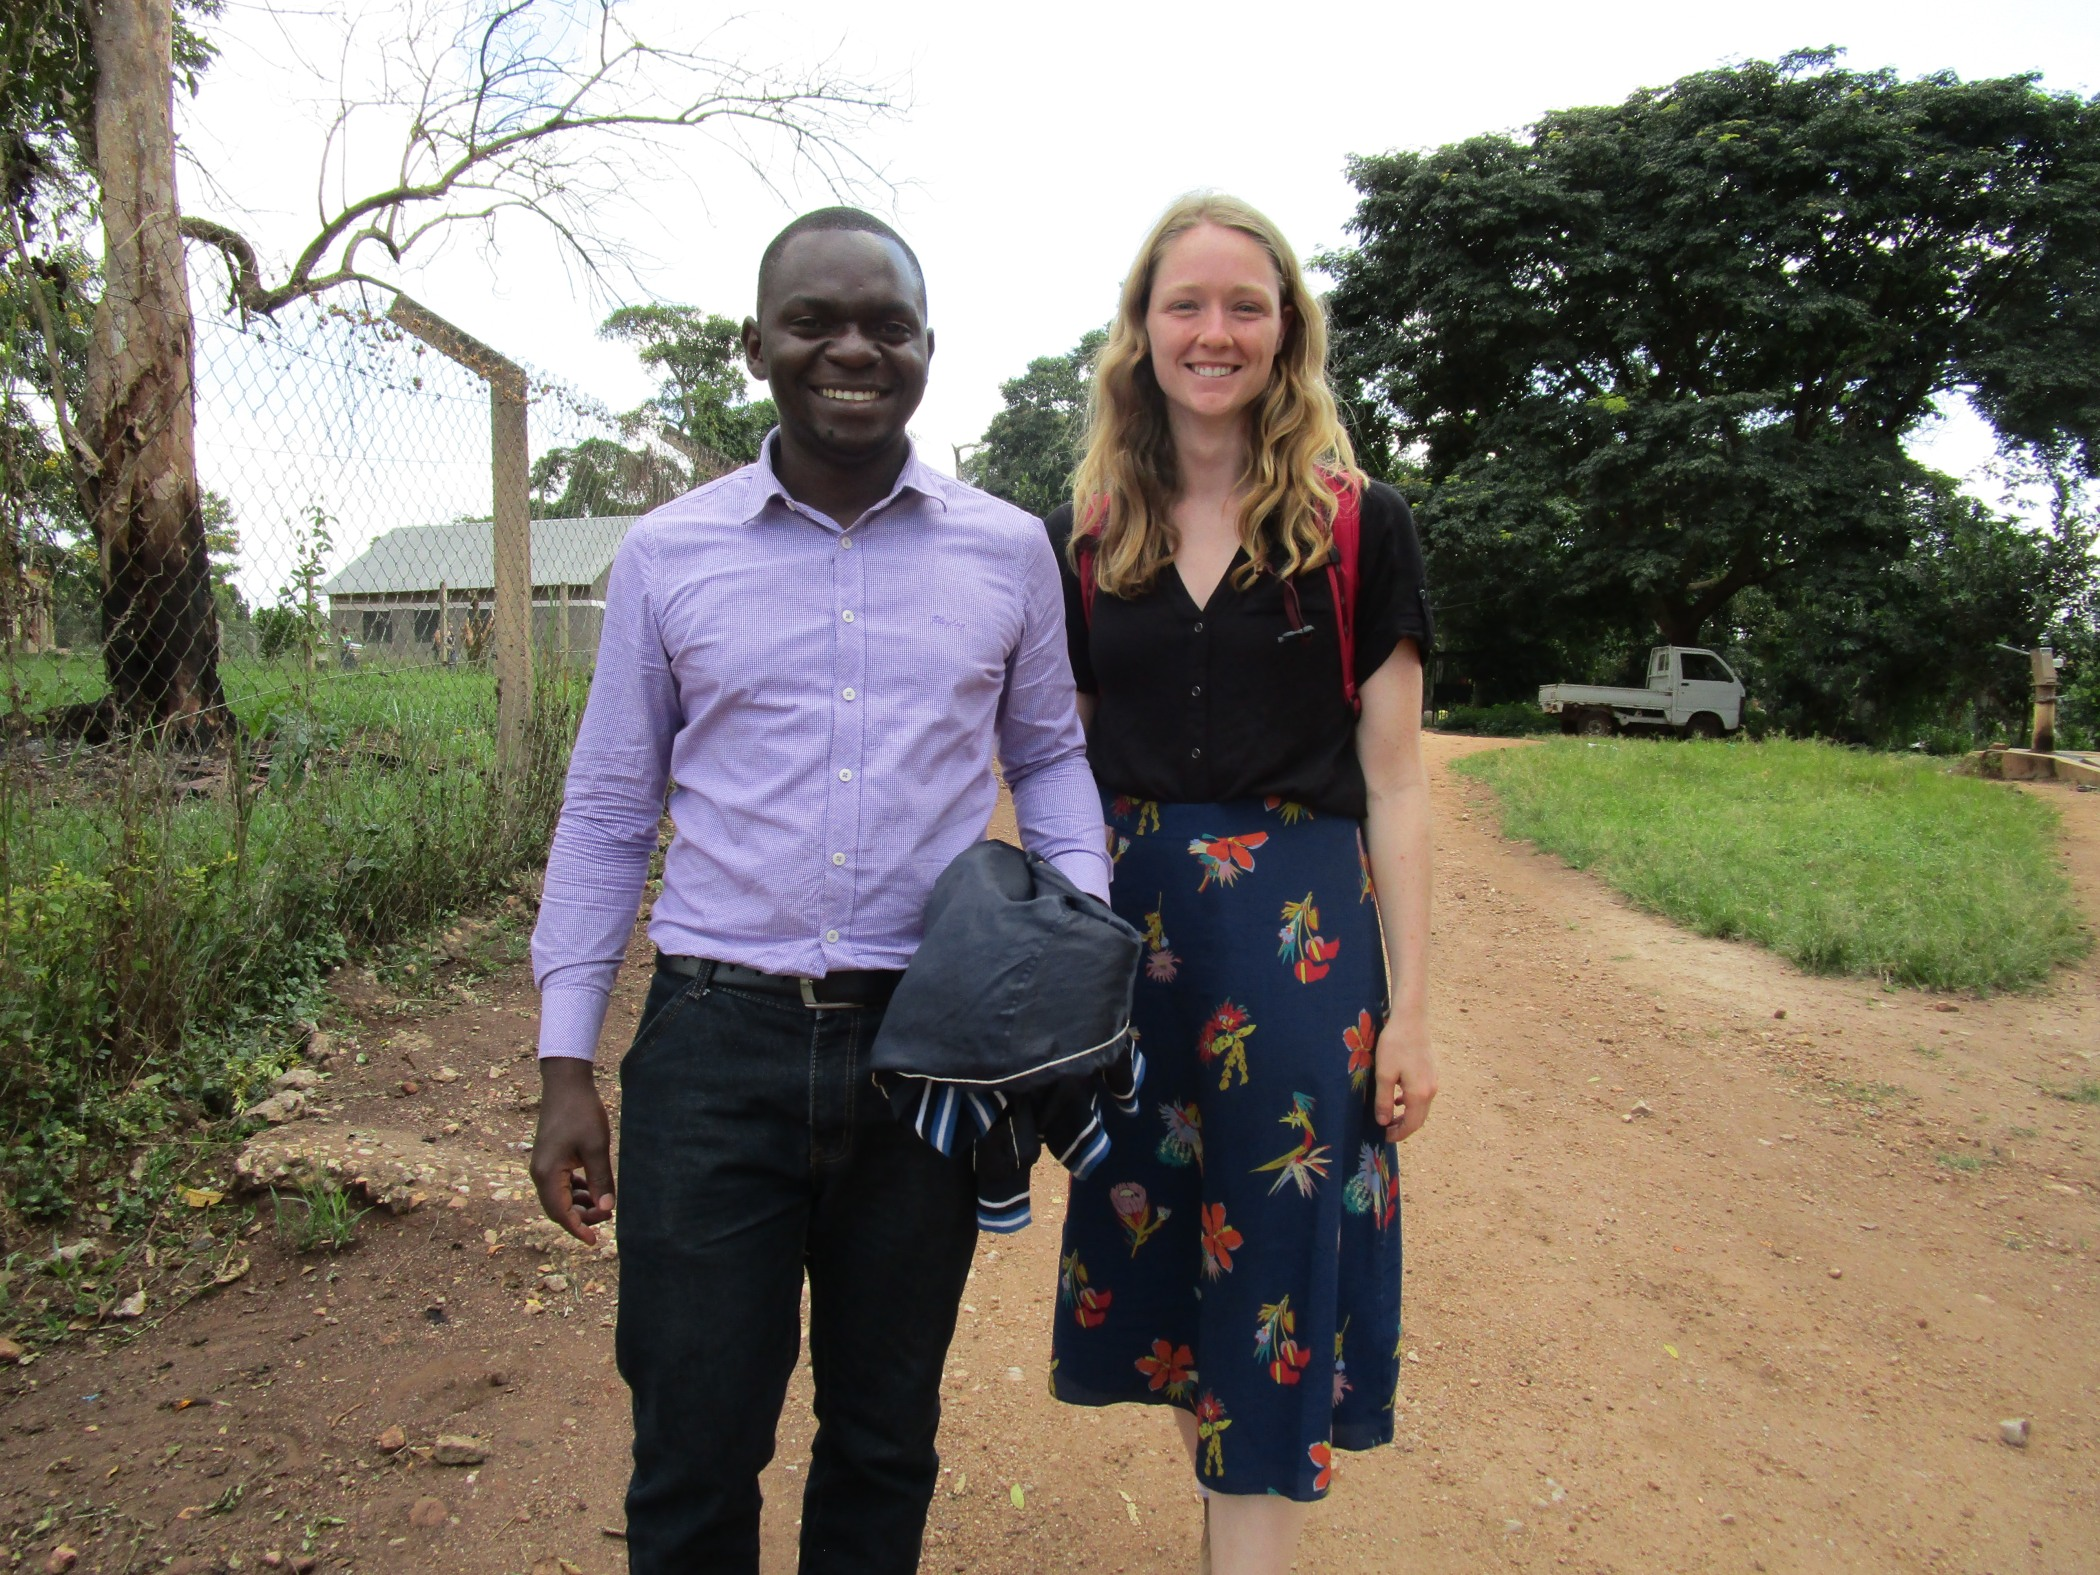 NGN fellows Andrew Tusubira, MPH (left) and Sarah Moor (YSM '22) (right) at ACCESS.